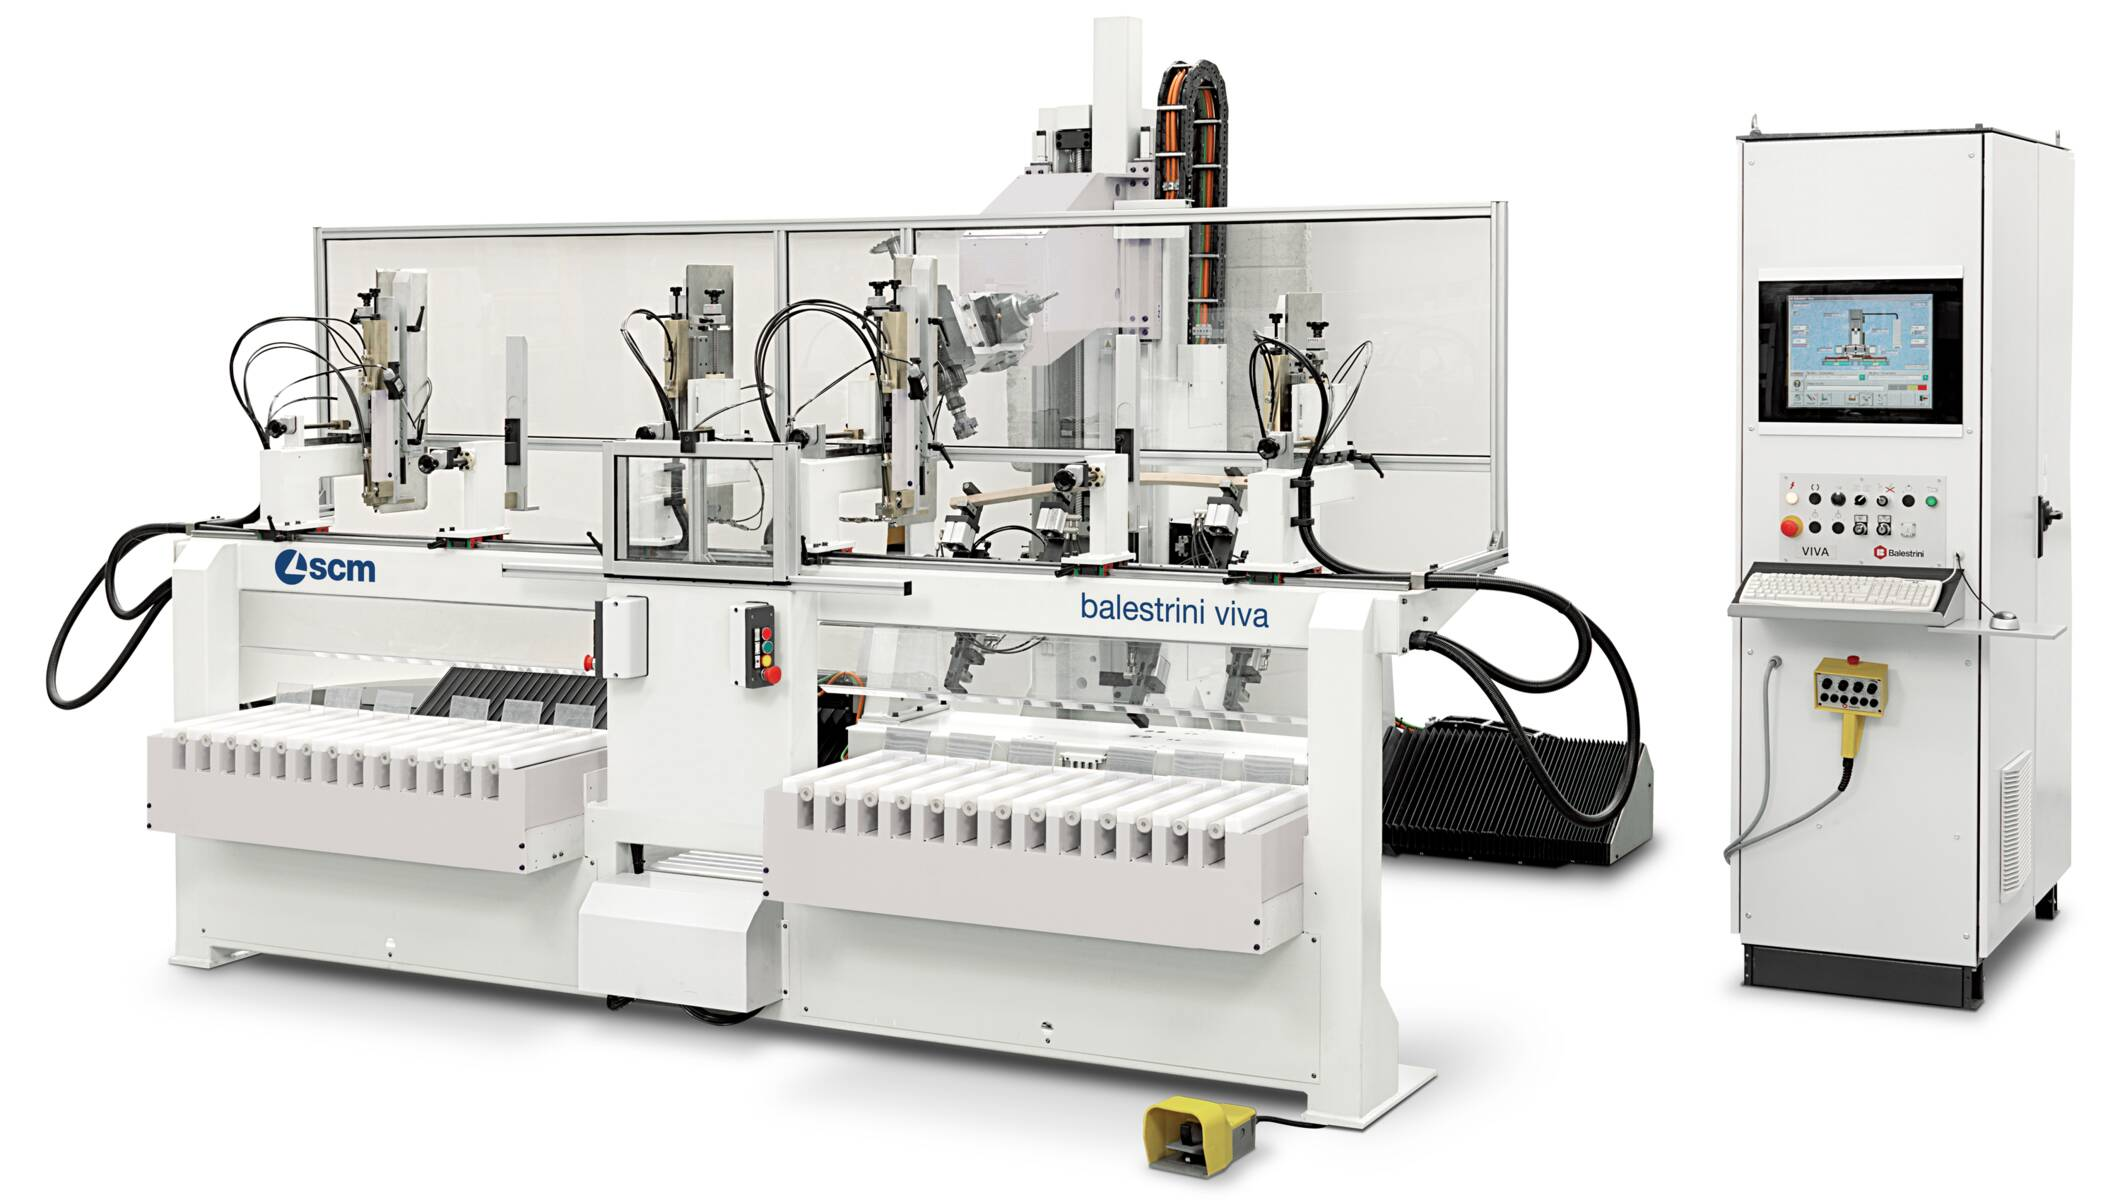 Tenoners, Mortisers, Double sided shapers - Tenoners, Mortisers, Double sided shapers - balestrini viva